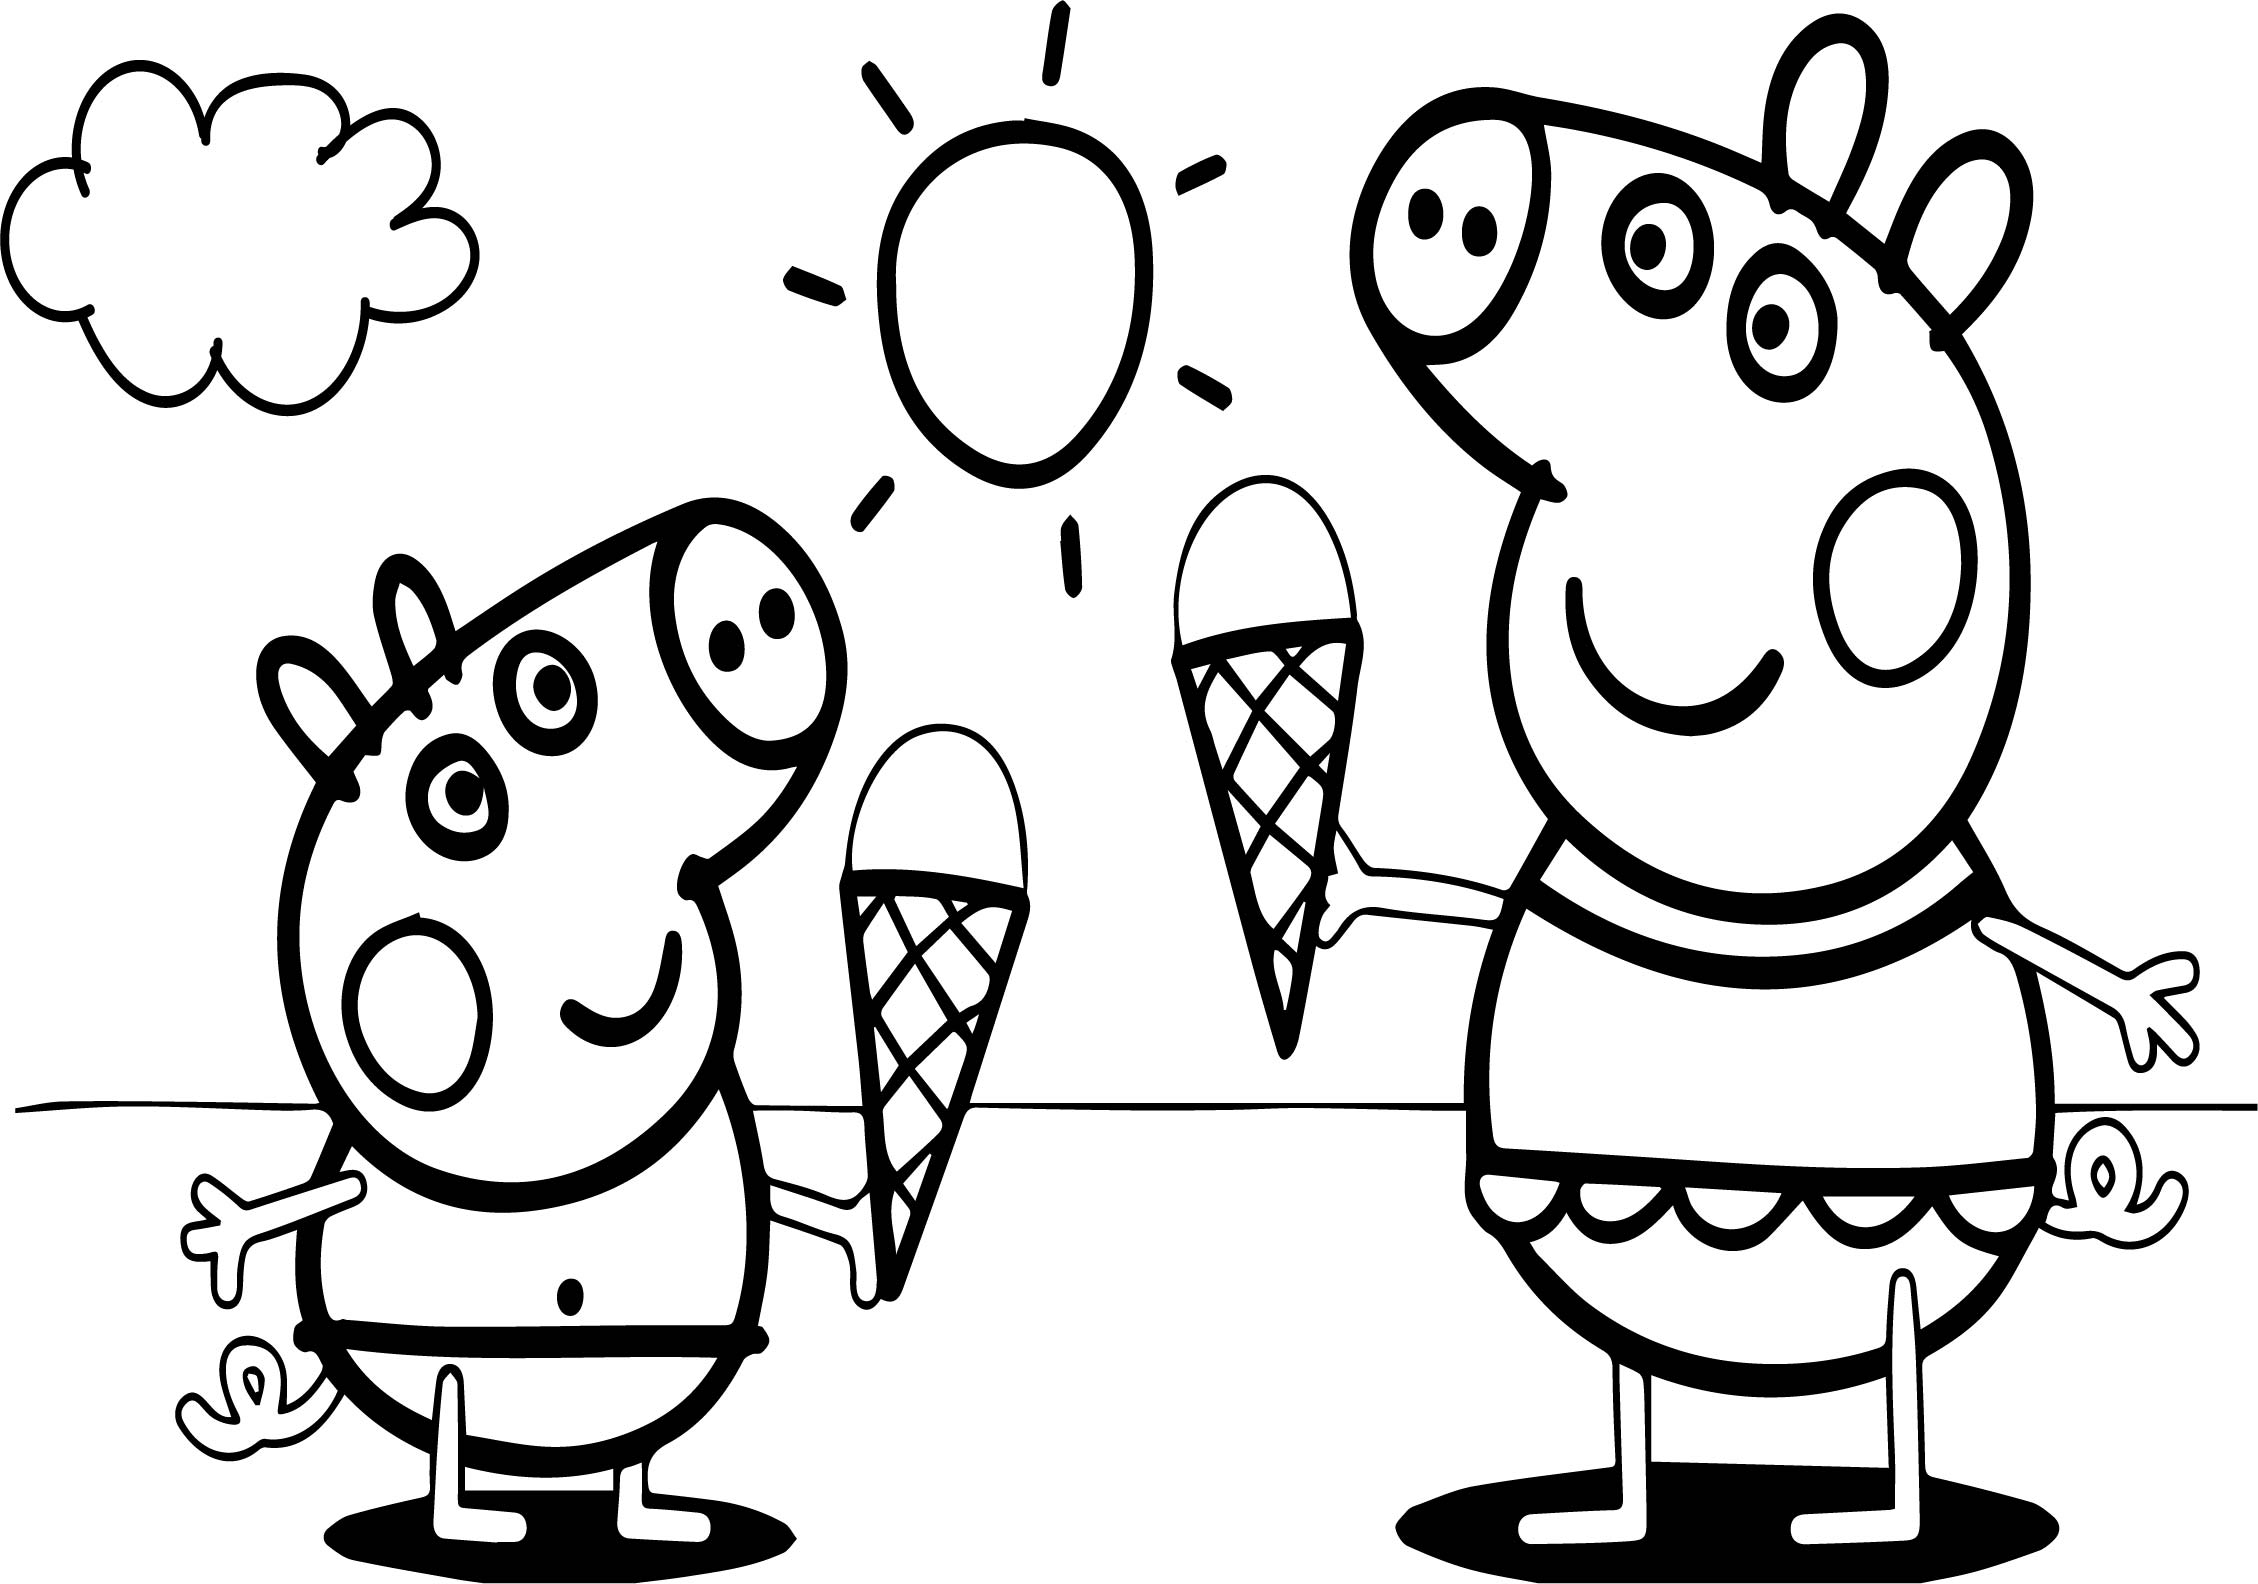 Peppa pig video free coloring page for Coloring pages peppa pig